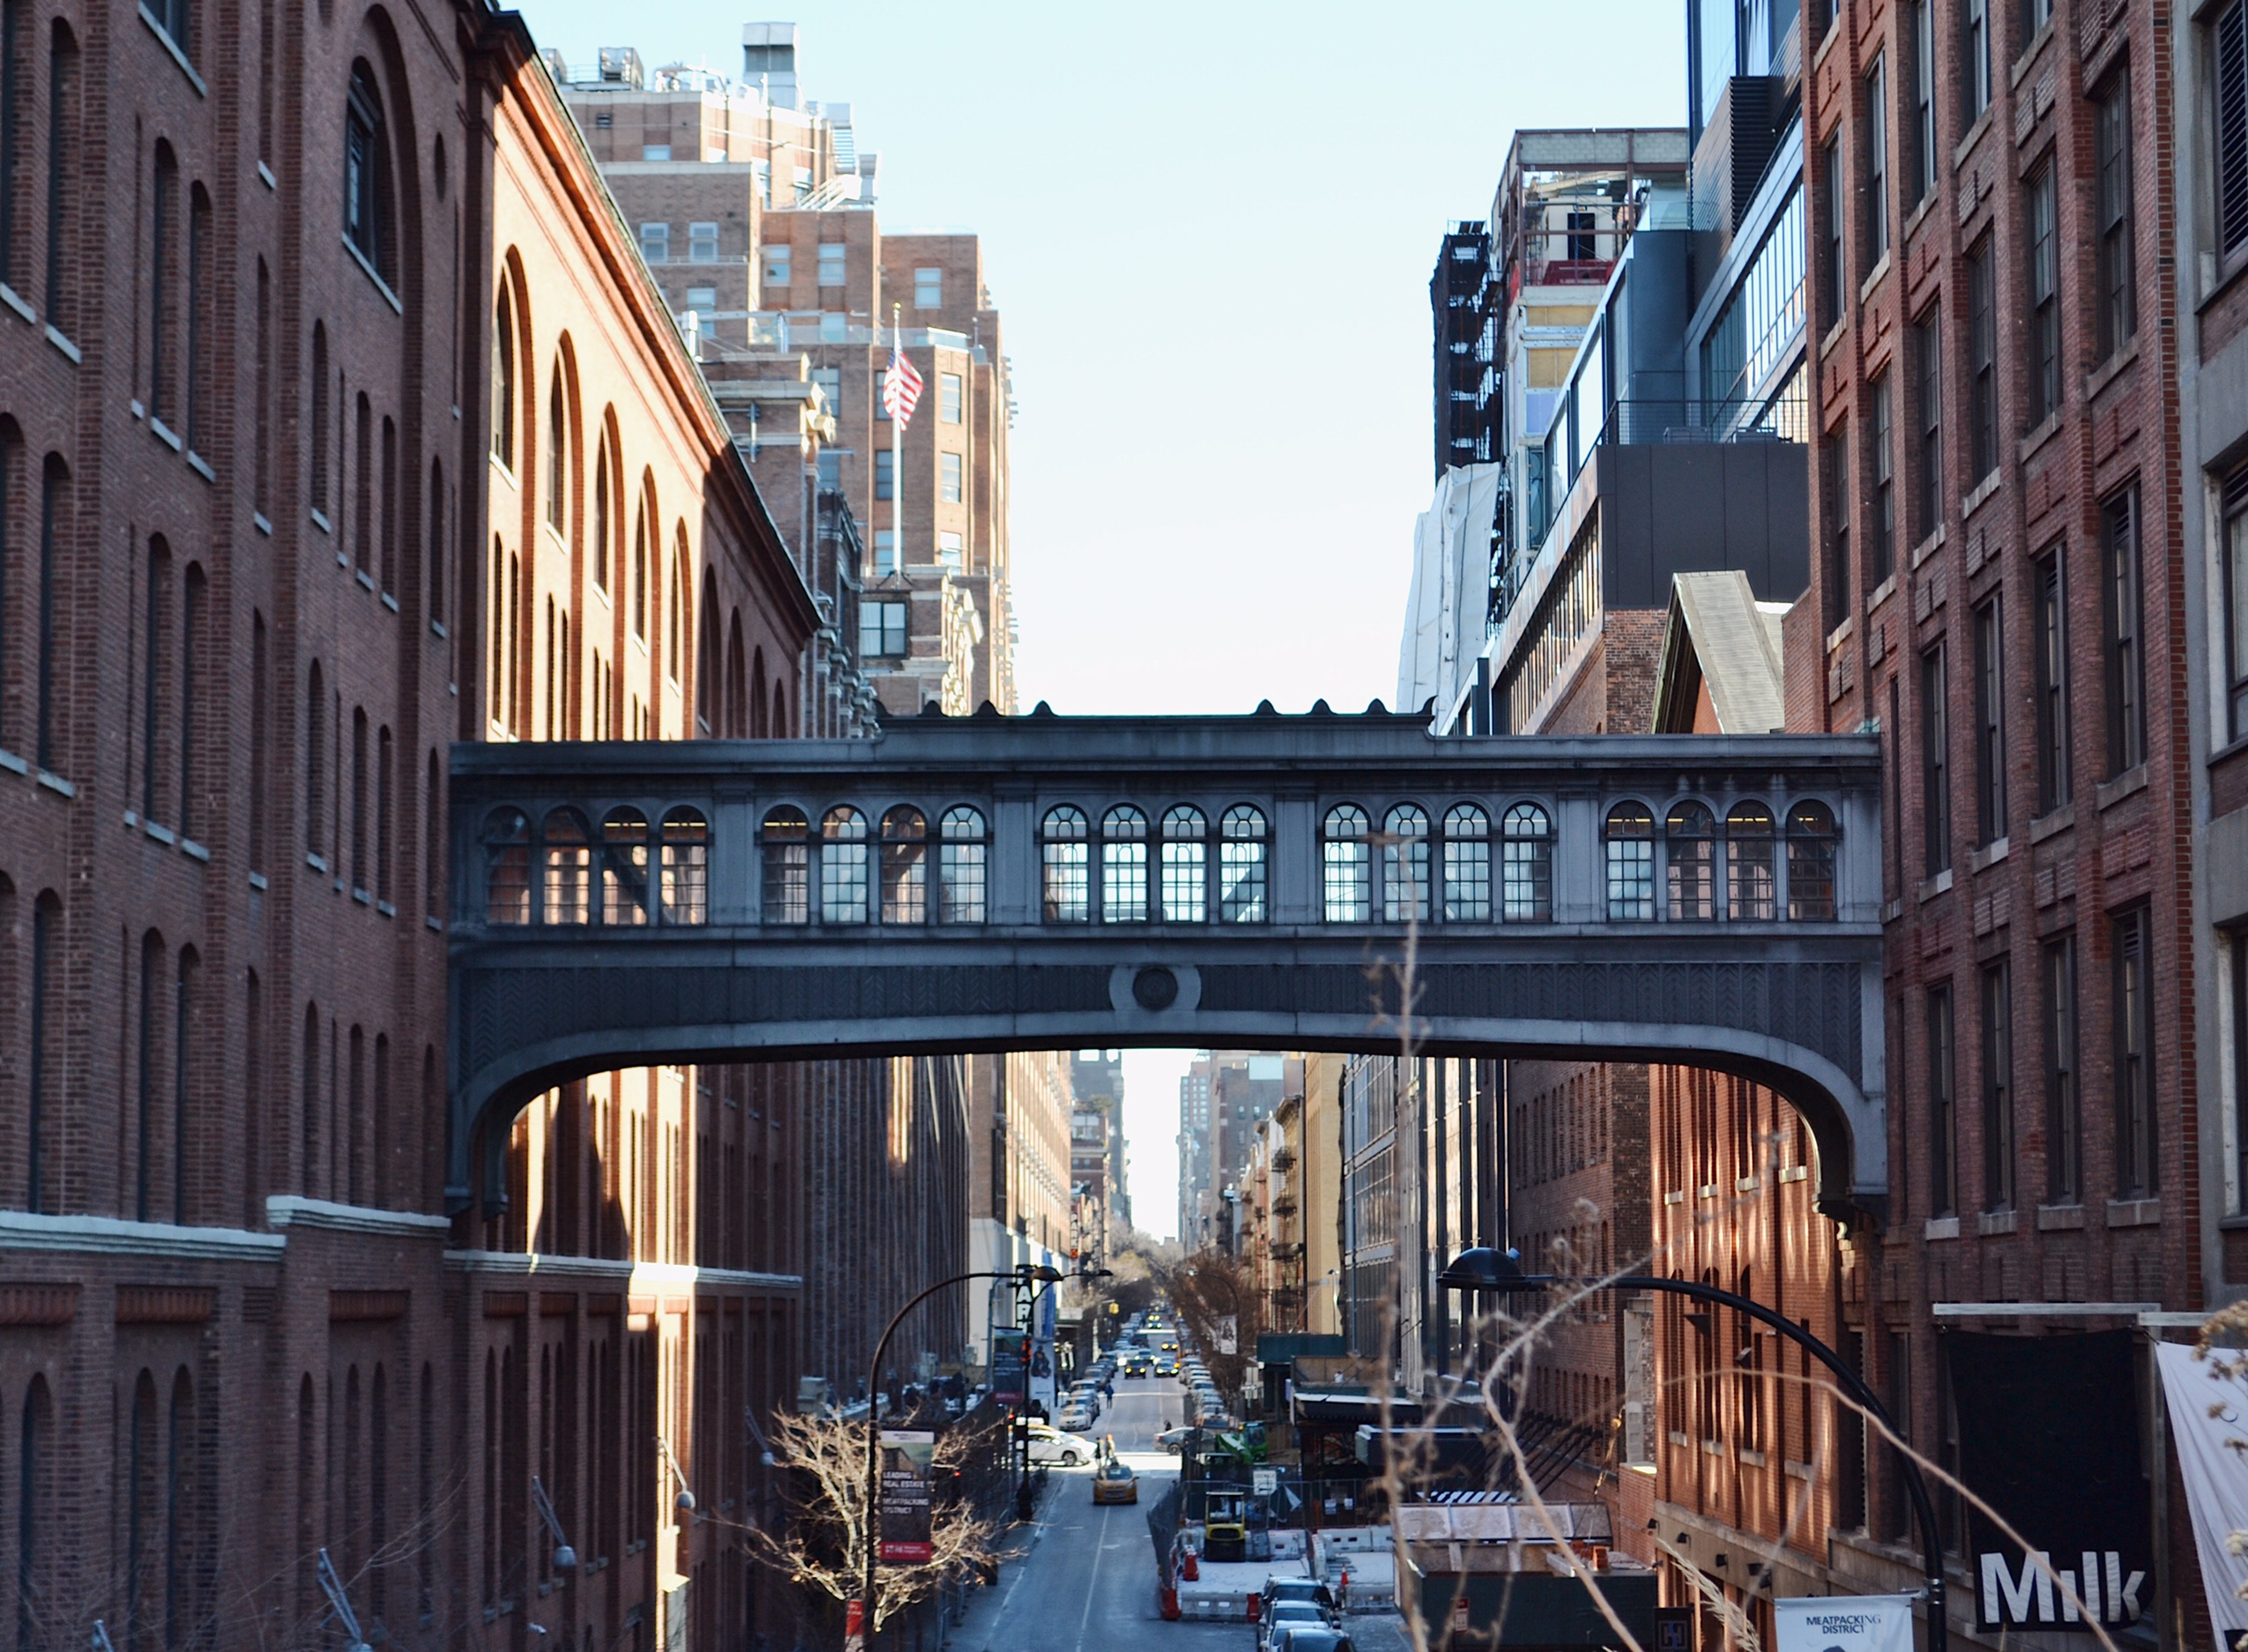 image of meatpacking district in New York from the highline